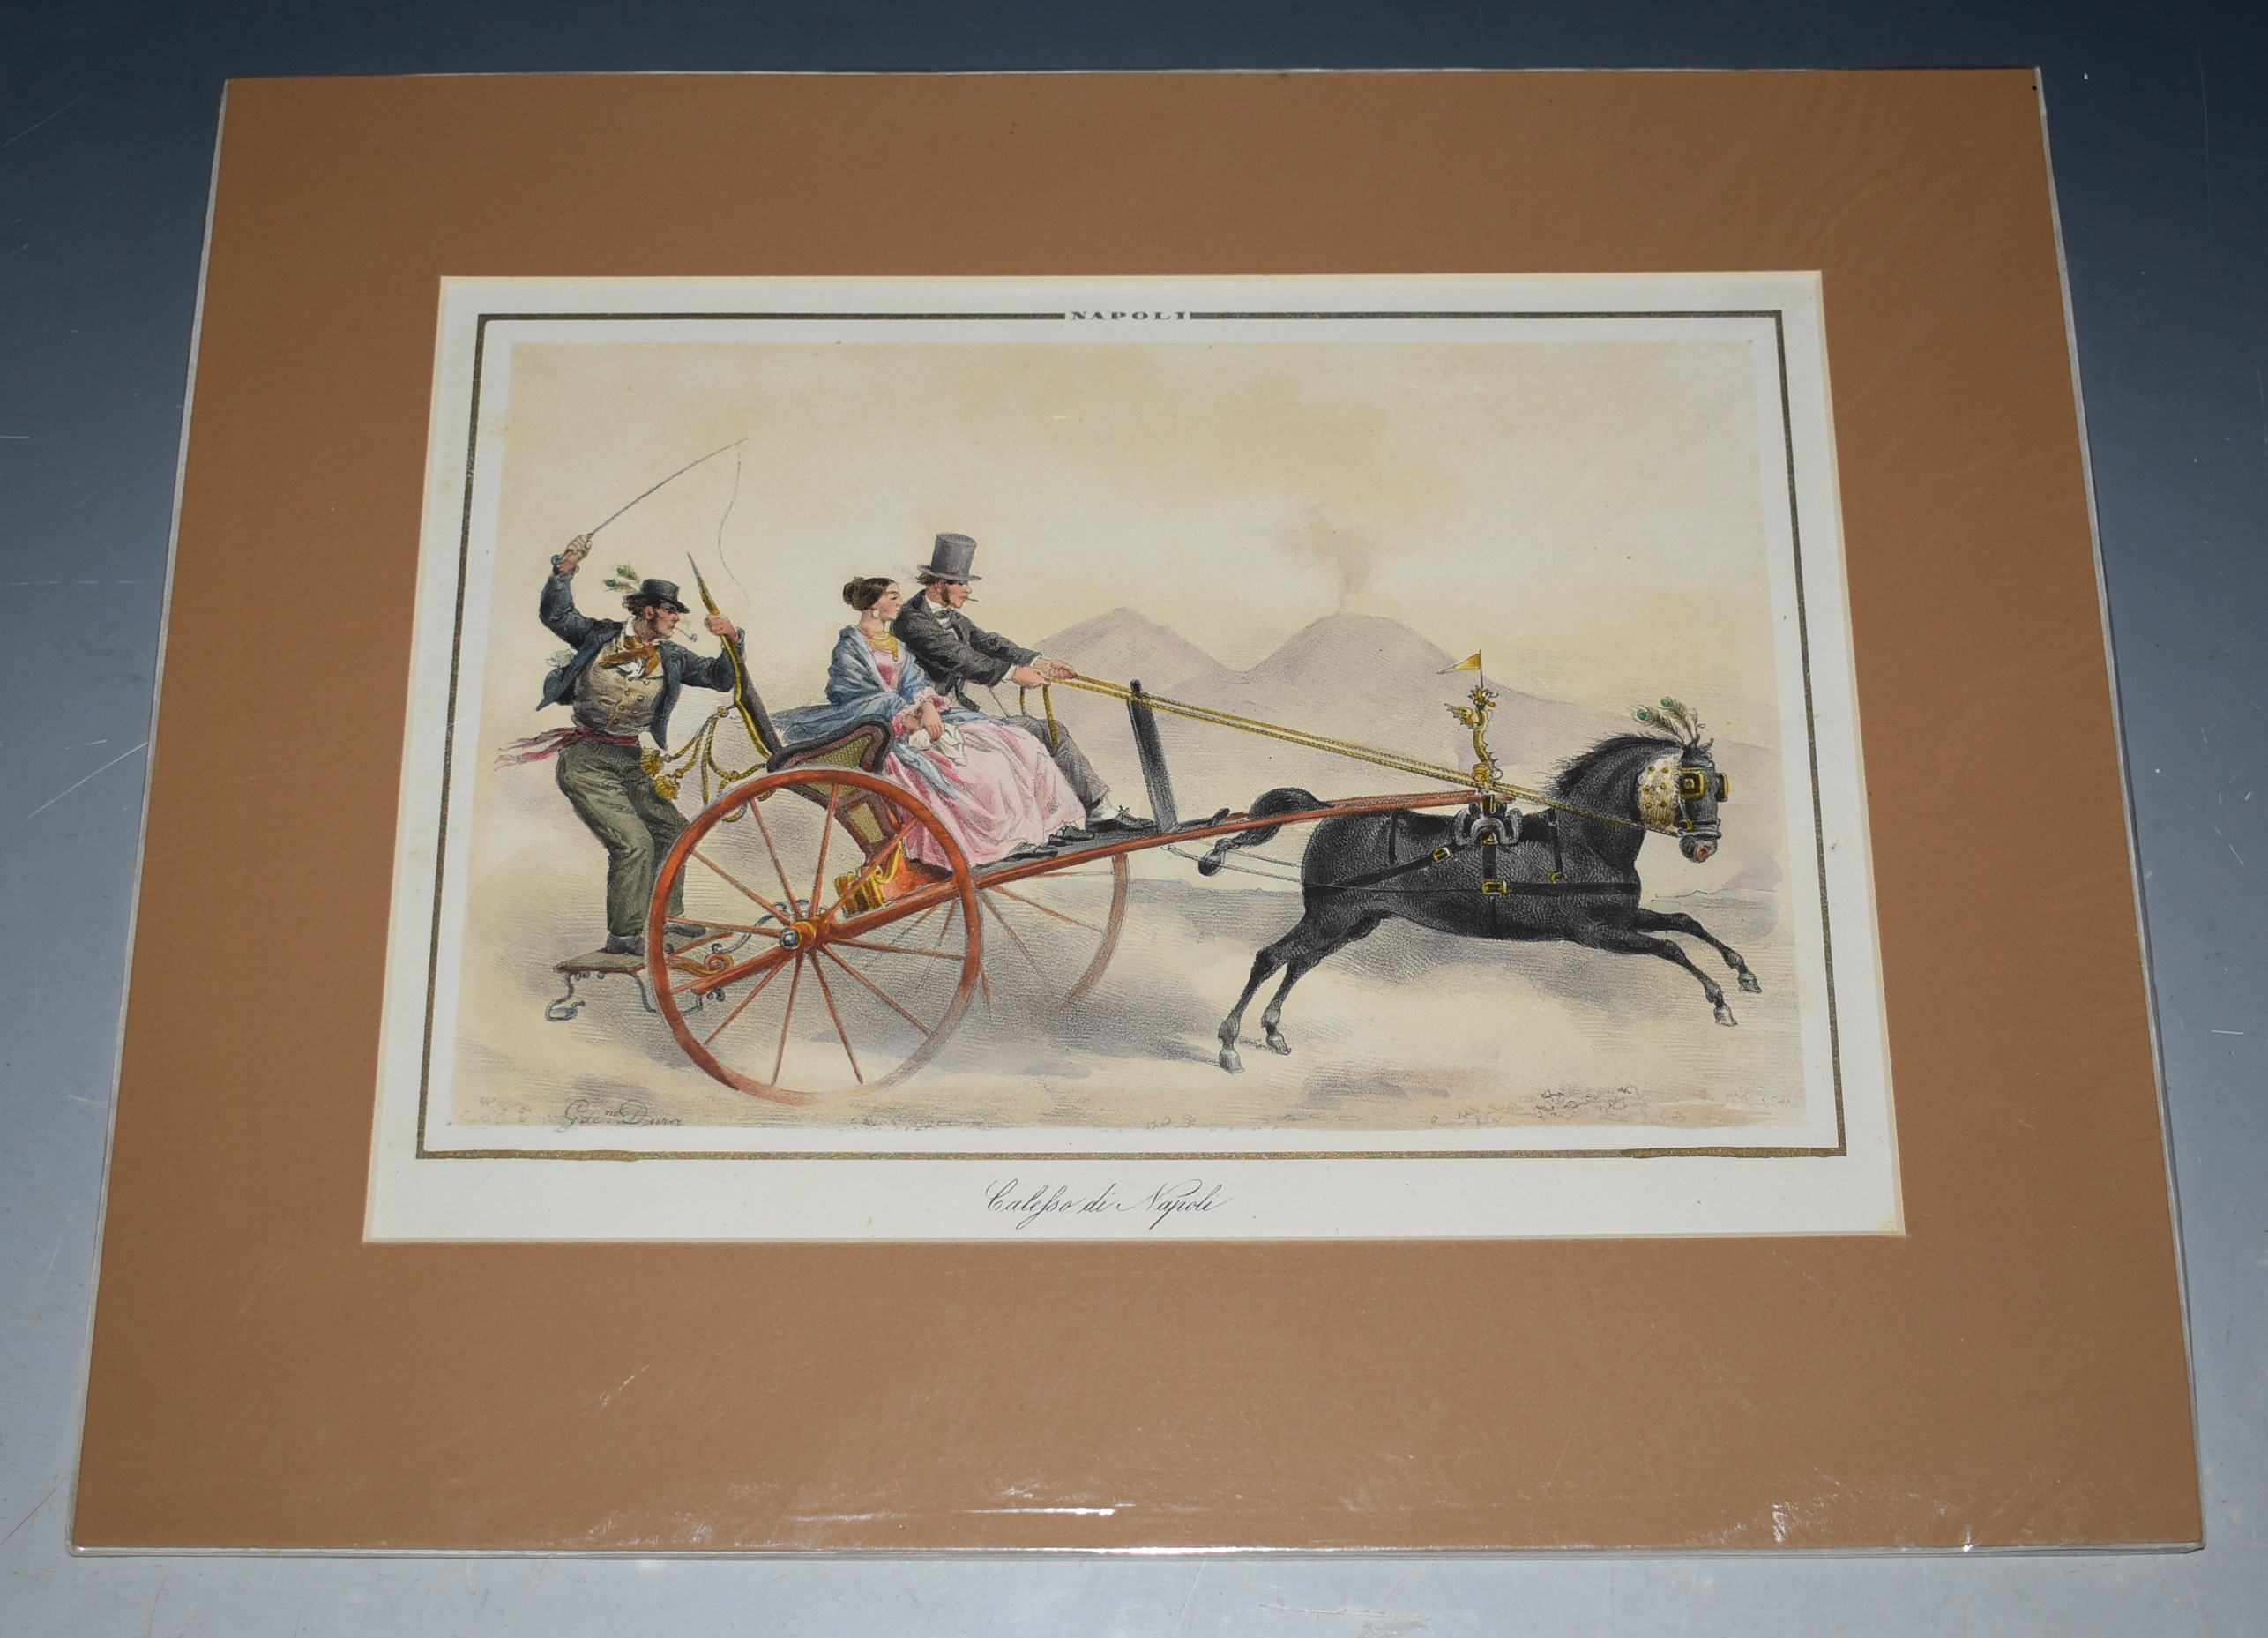 Image for Calesso di Napoli' Horse & carriage, With Mount Vesuvius in background Hand-coloured lithograph, from 'Raccolta di Costumi Napoletani', NEAPOLITAN COSTUME